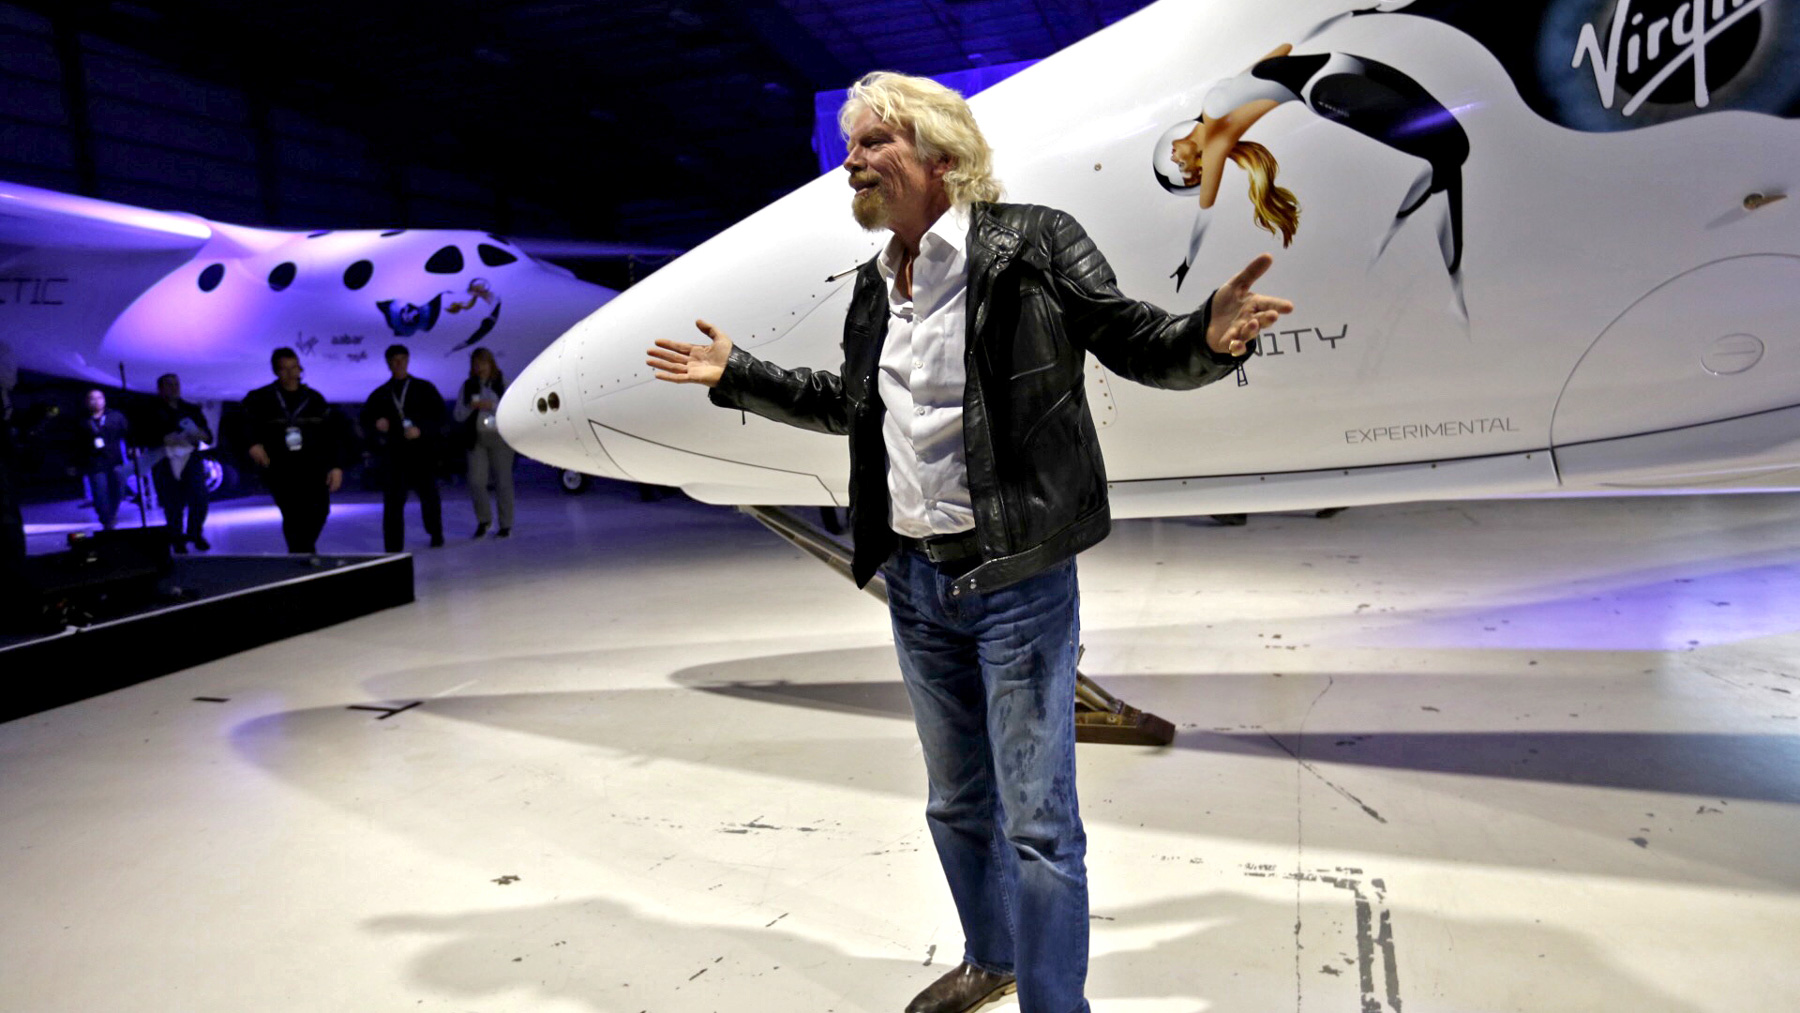 Richard Branson Space Hotels